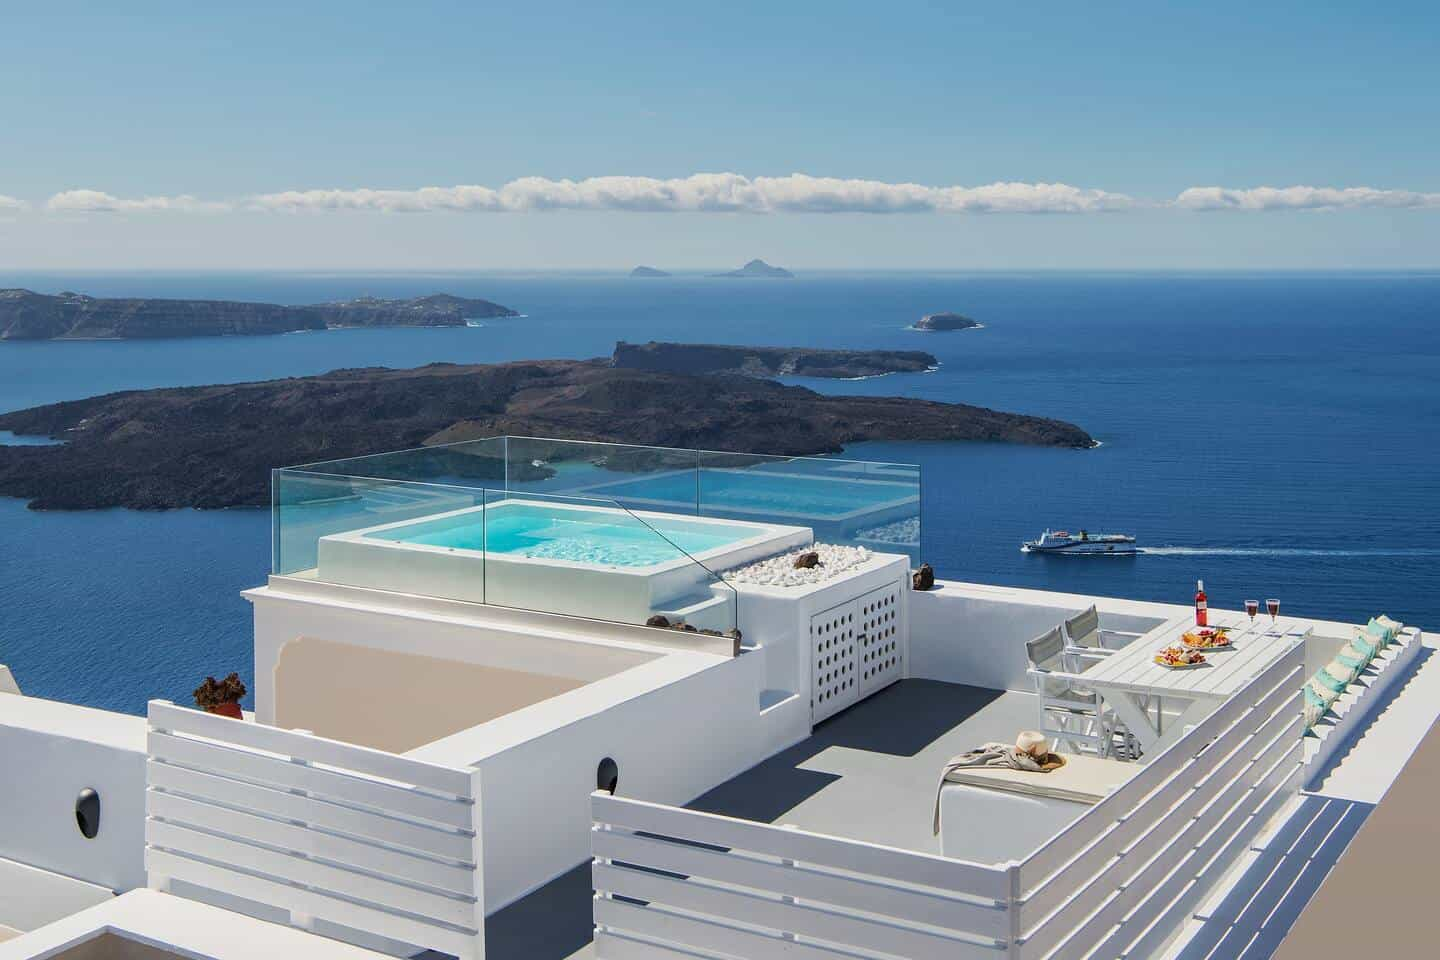 Image of Airbnb rental in Santorini, Greece